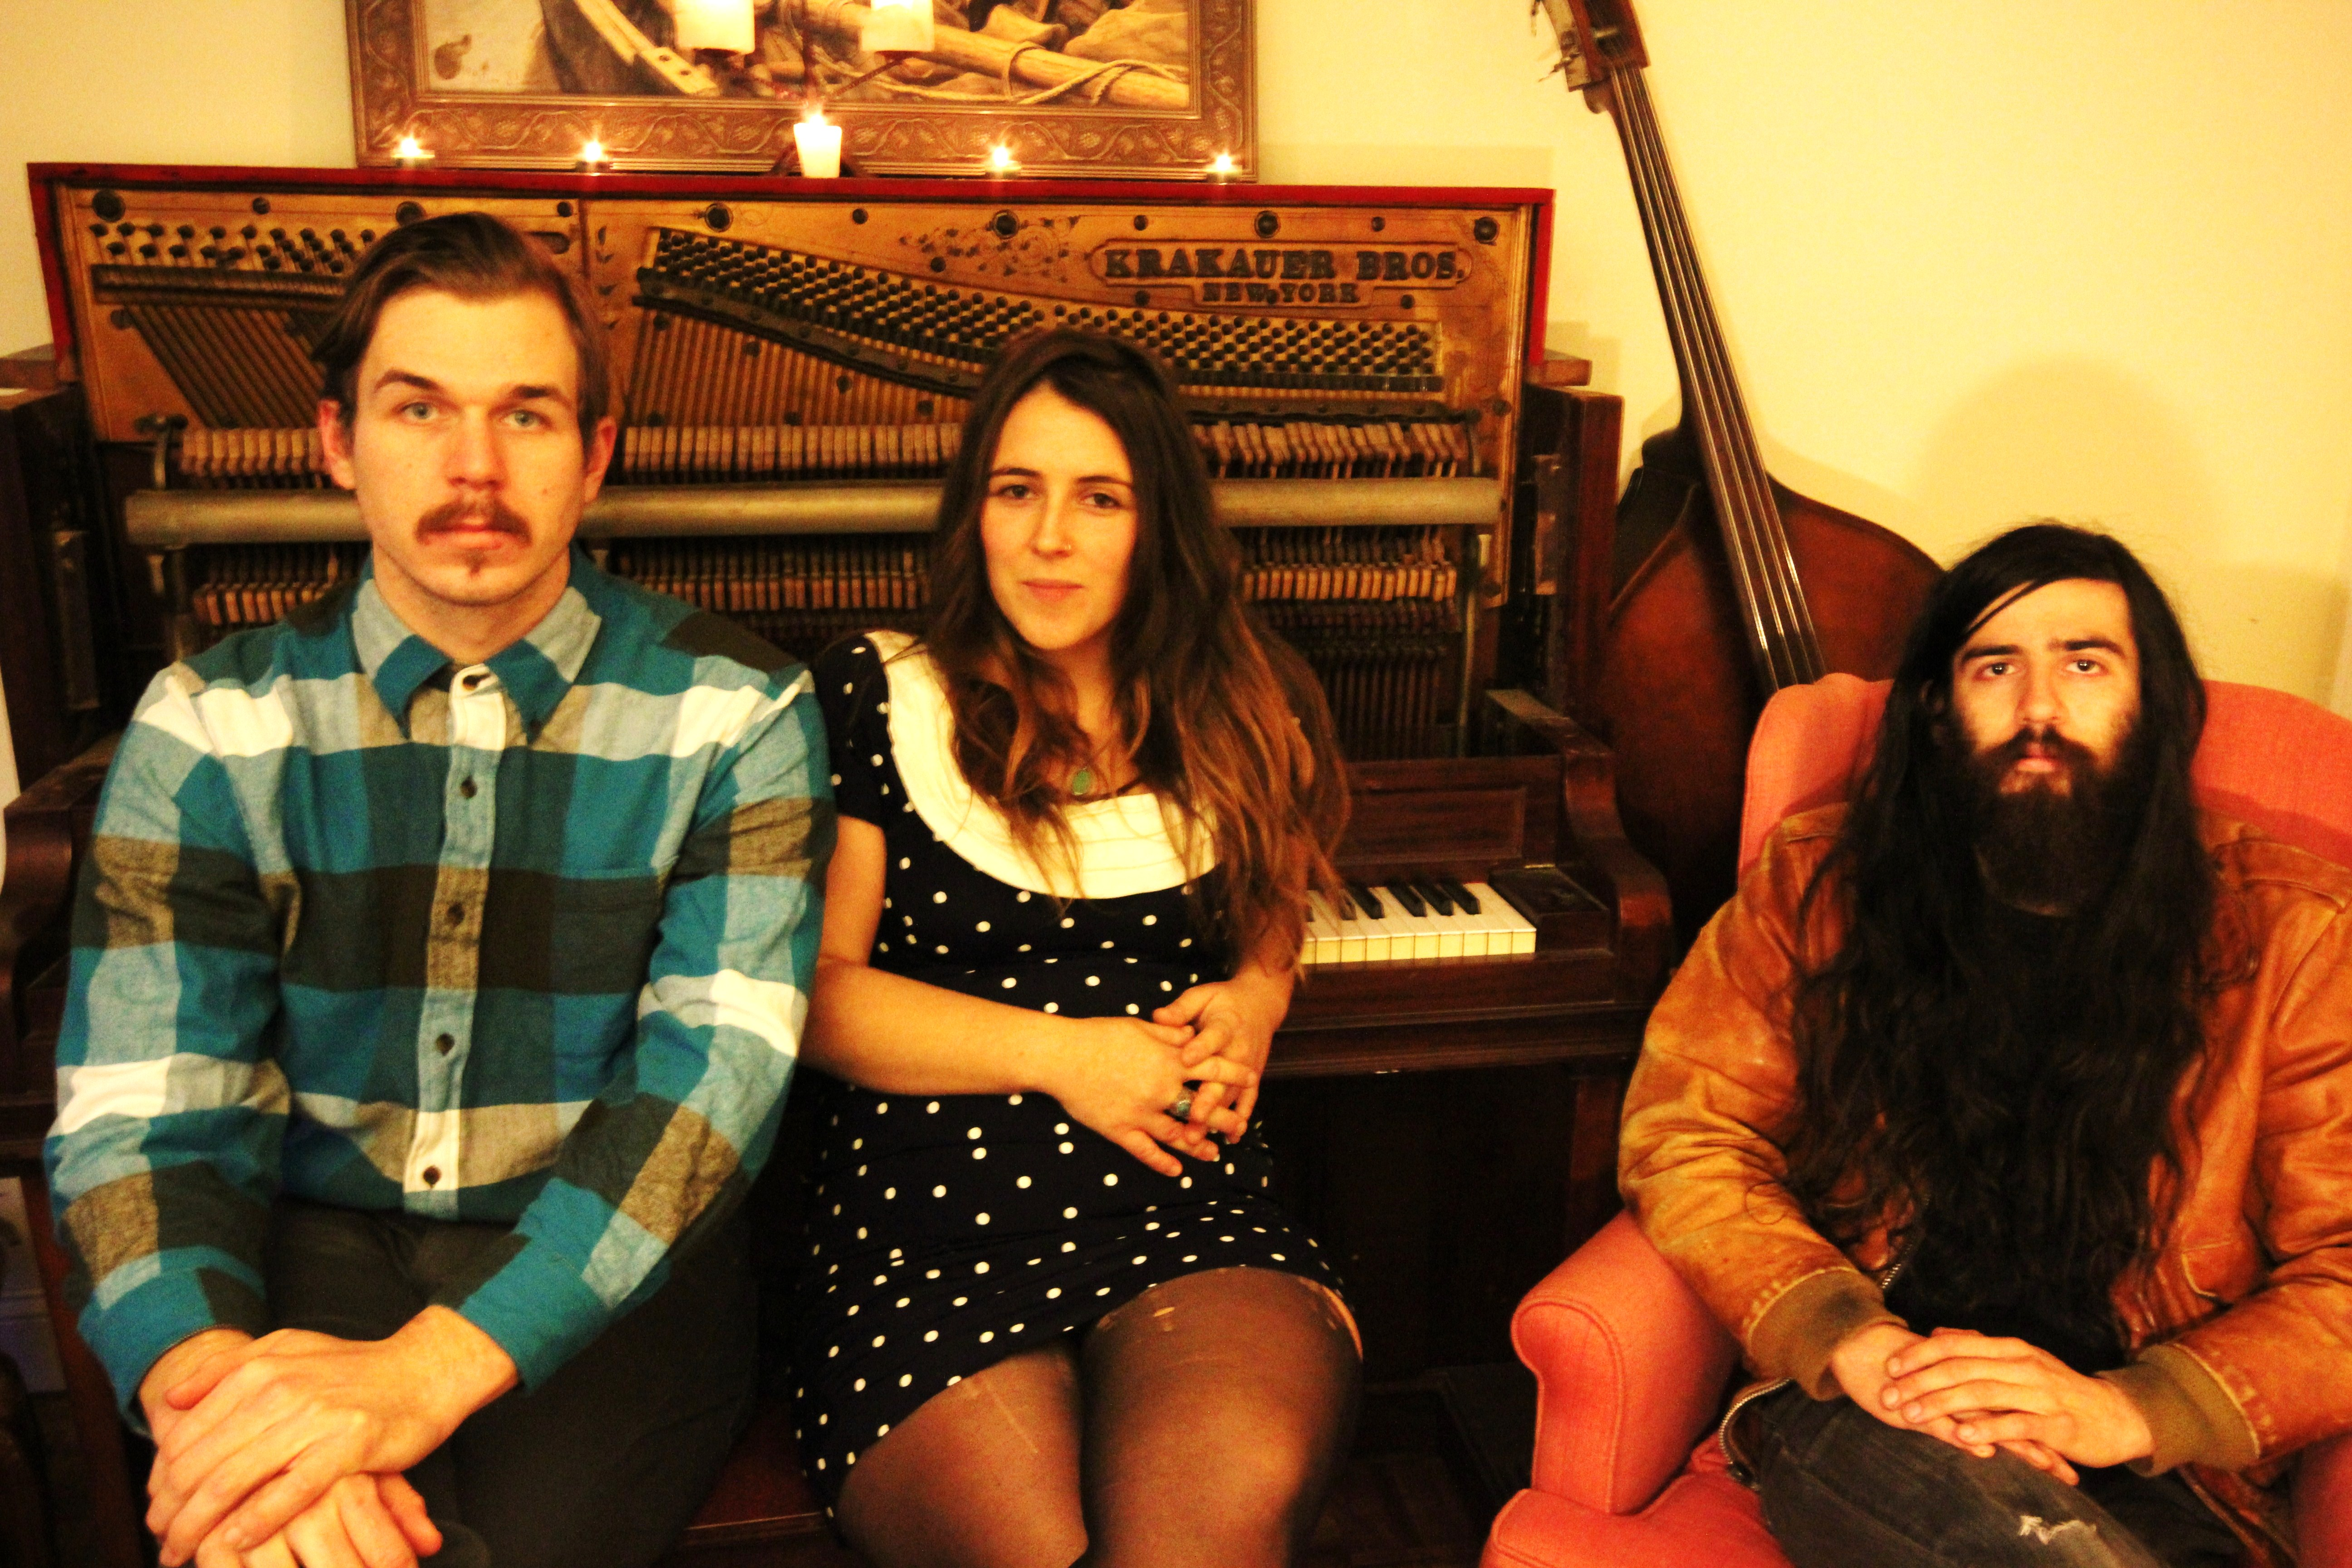 Lily and the Tigers press photo baby robot media american songwriter Casey Hood (Guitarist, Vocals) Adam Mincey (Upright Bass) Mikhail Ally (Bass Clarinet) Jared Pepper (Resophonic guitar)